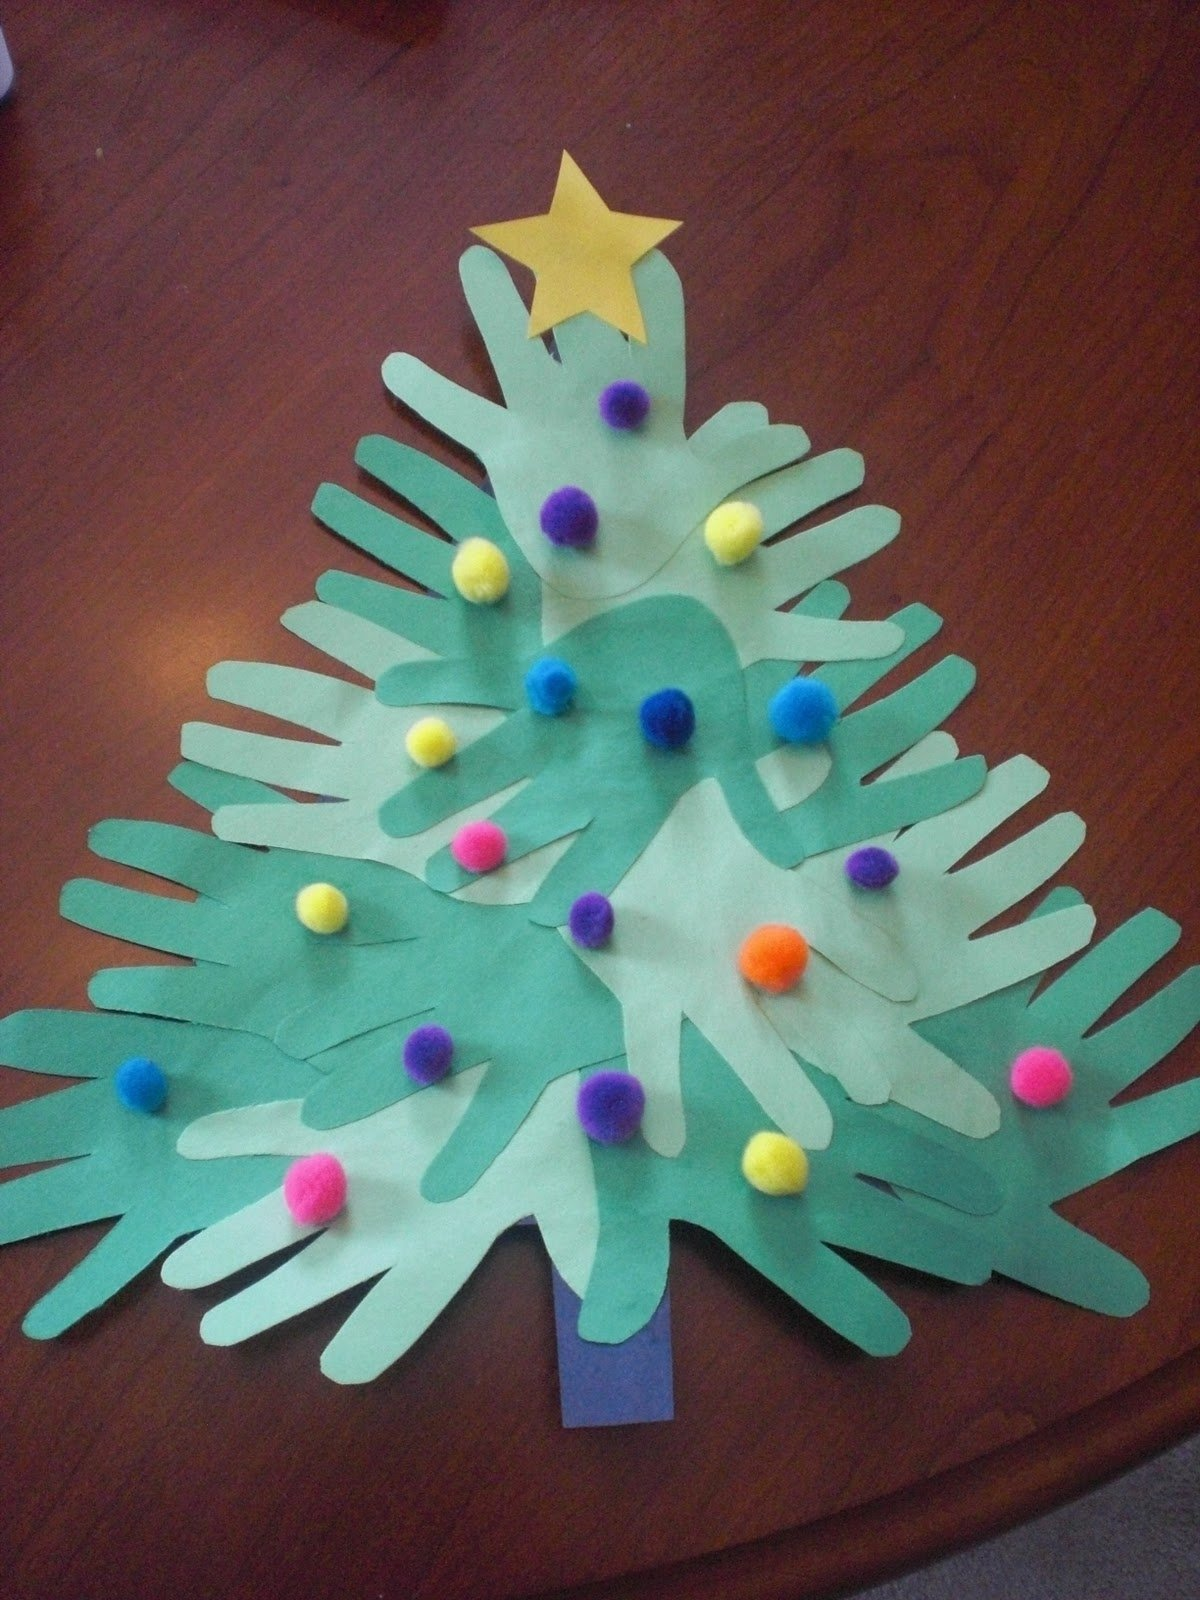 10 Amazing Holiday Craft Ideas For Kids craft ideas for christmas moment kids finelakewoodplumbing x3snzejx 2 2020